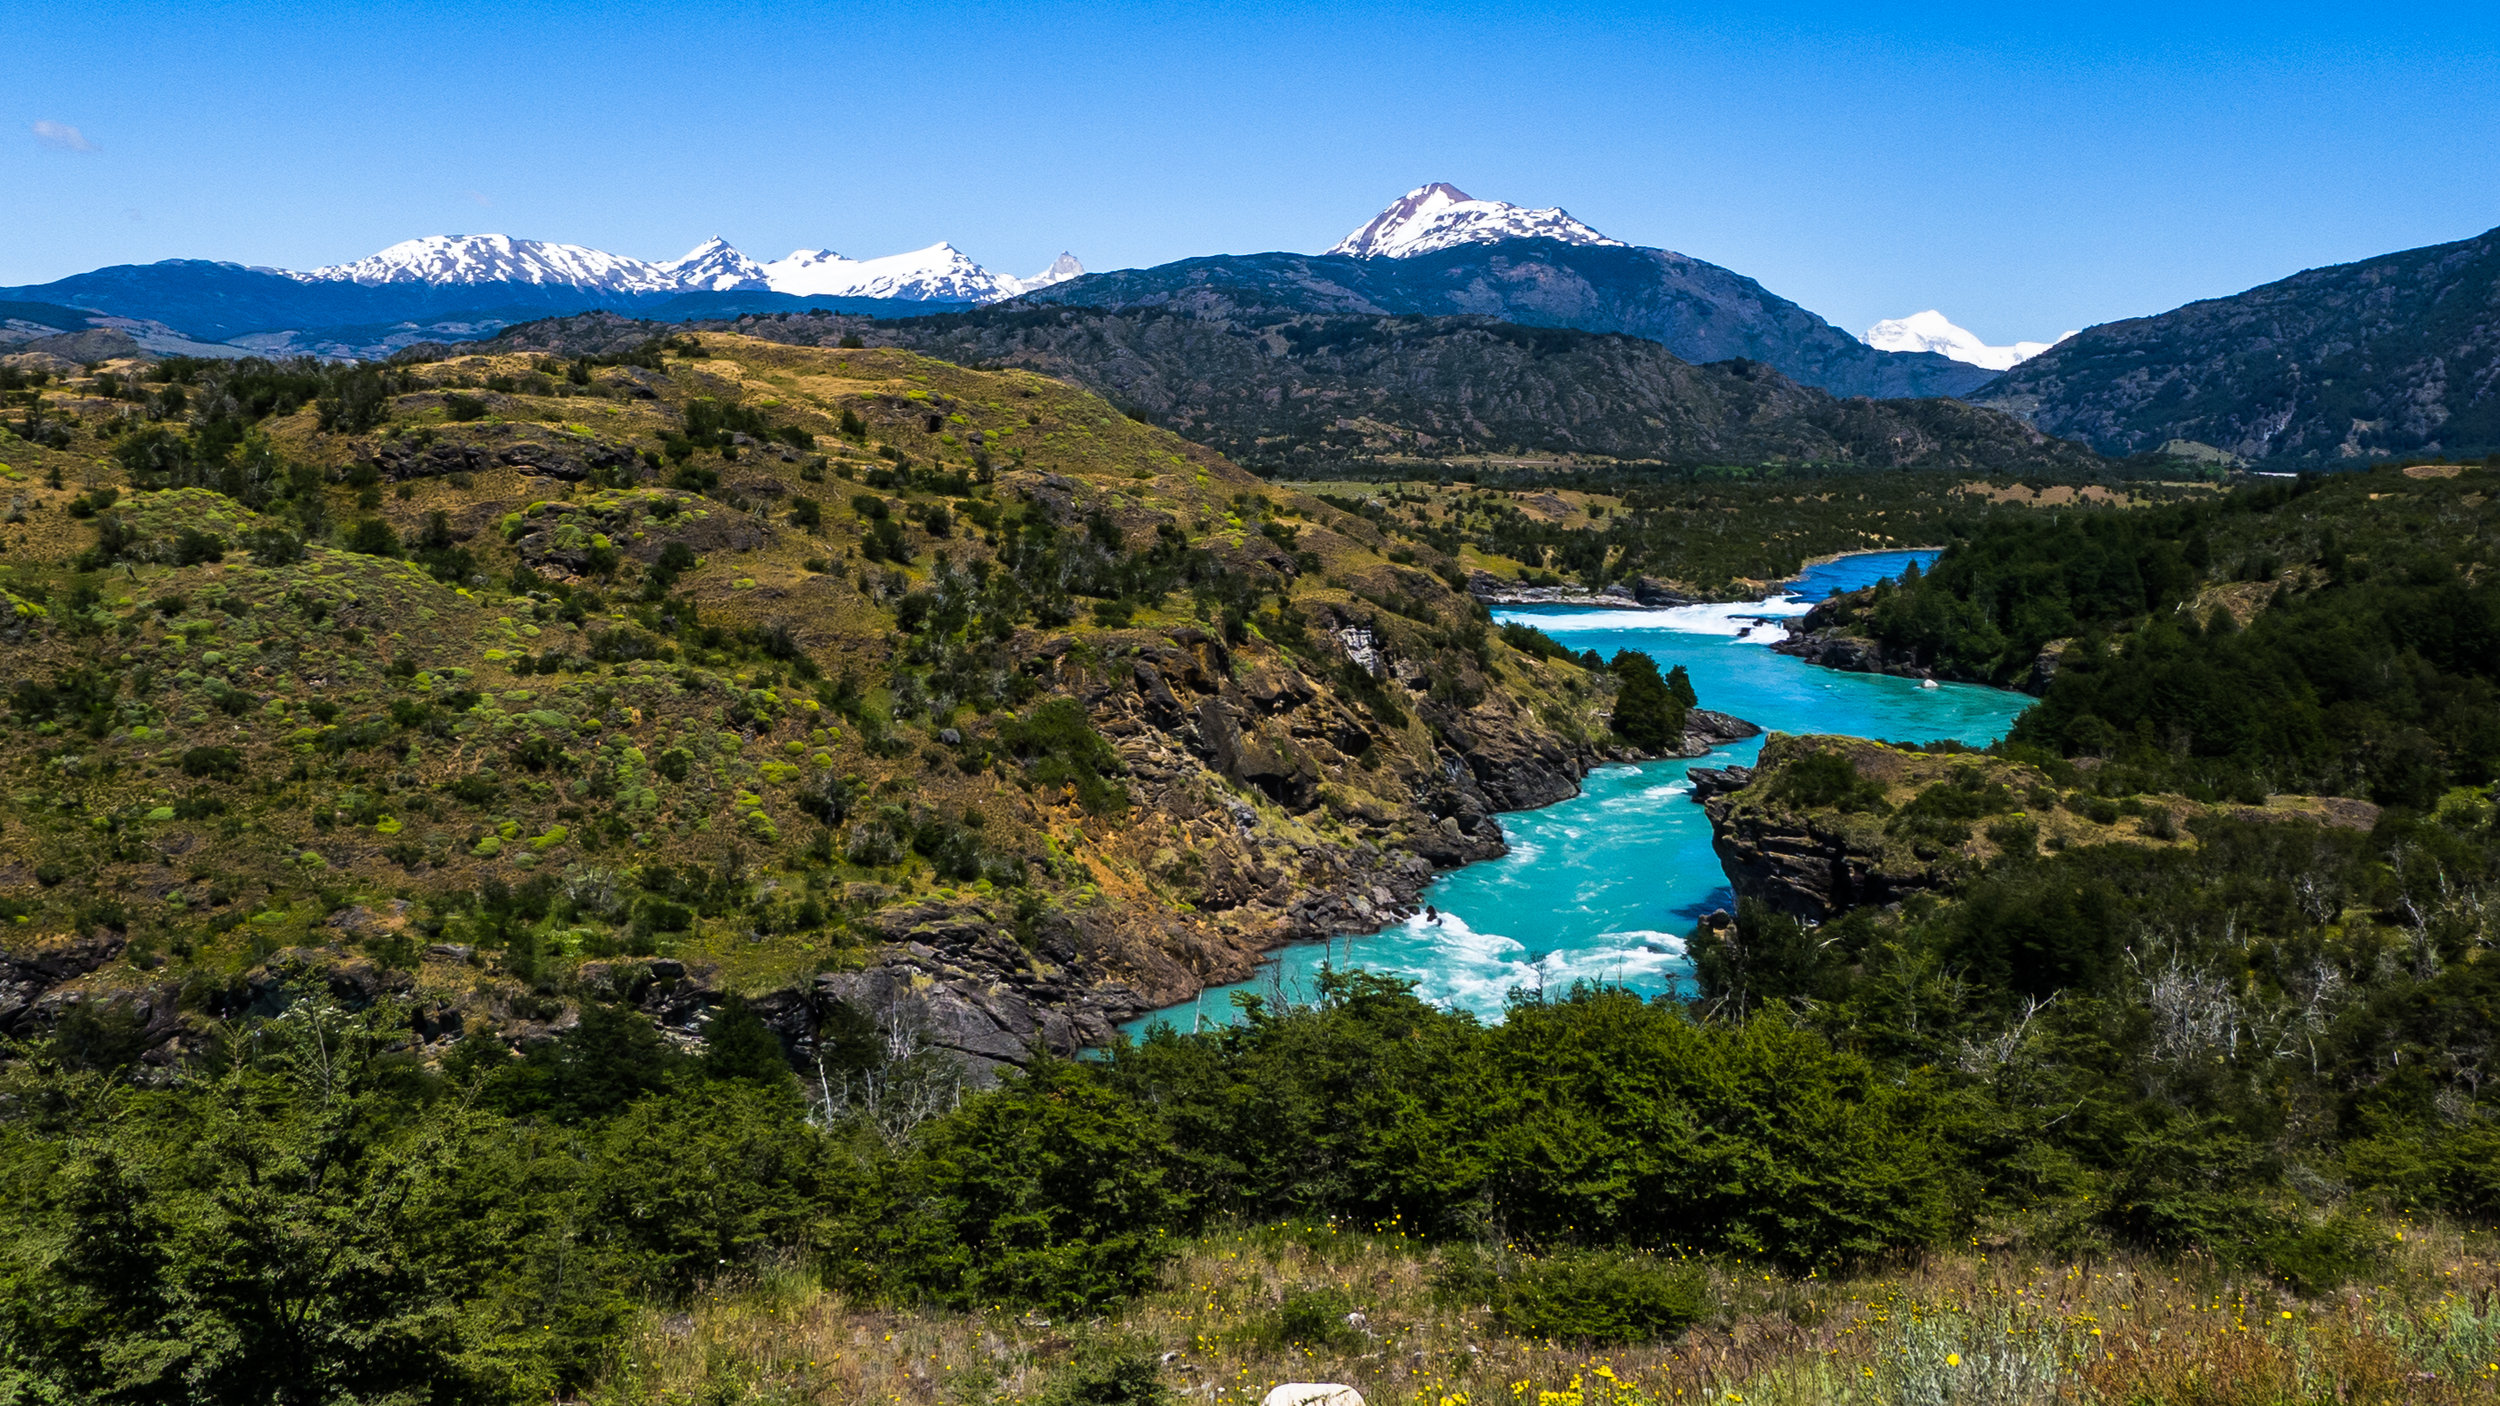 Blue waters of the Baker River -